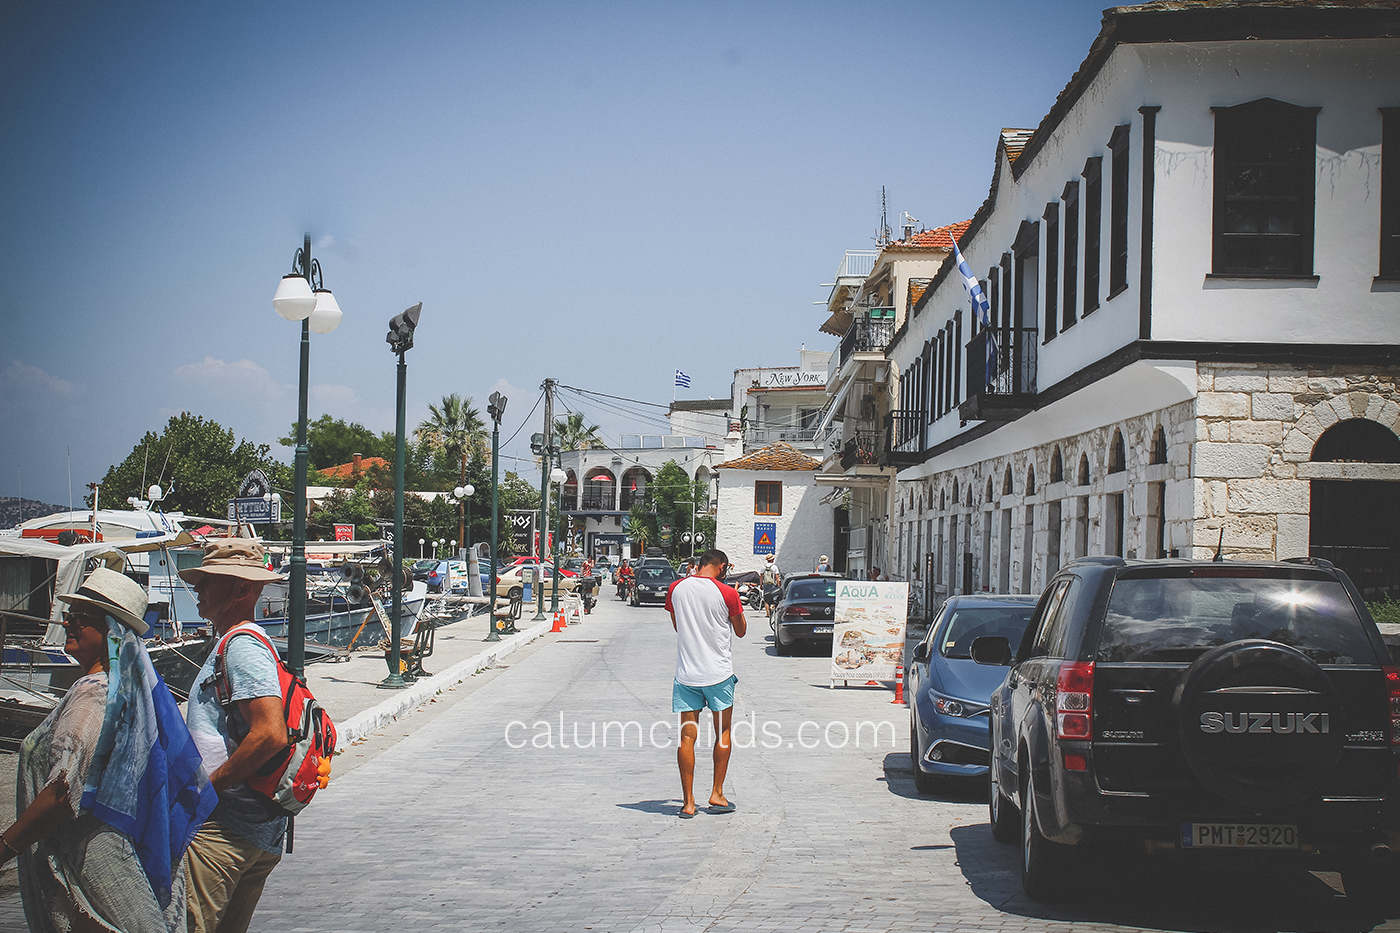 A man stands in the centre of a road in a town.